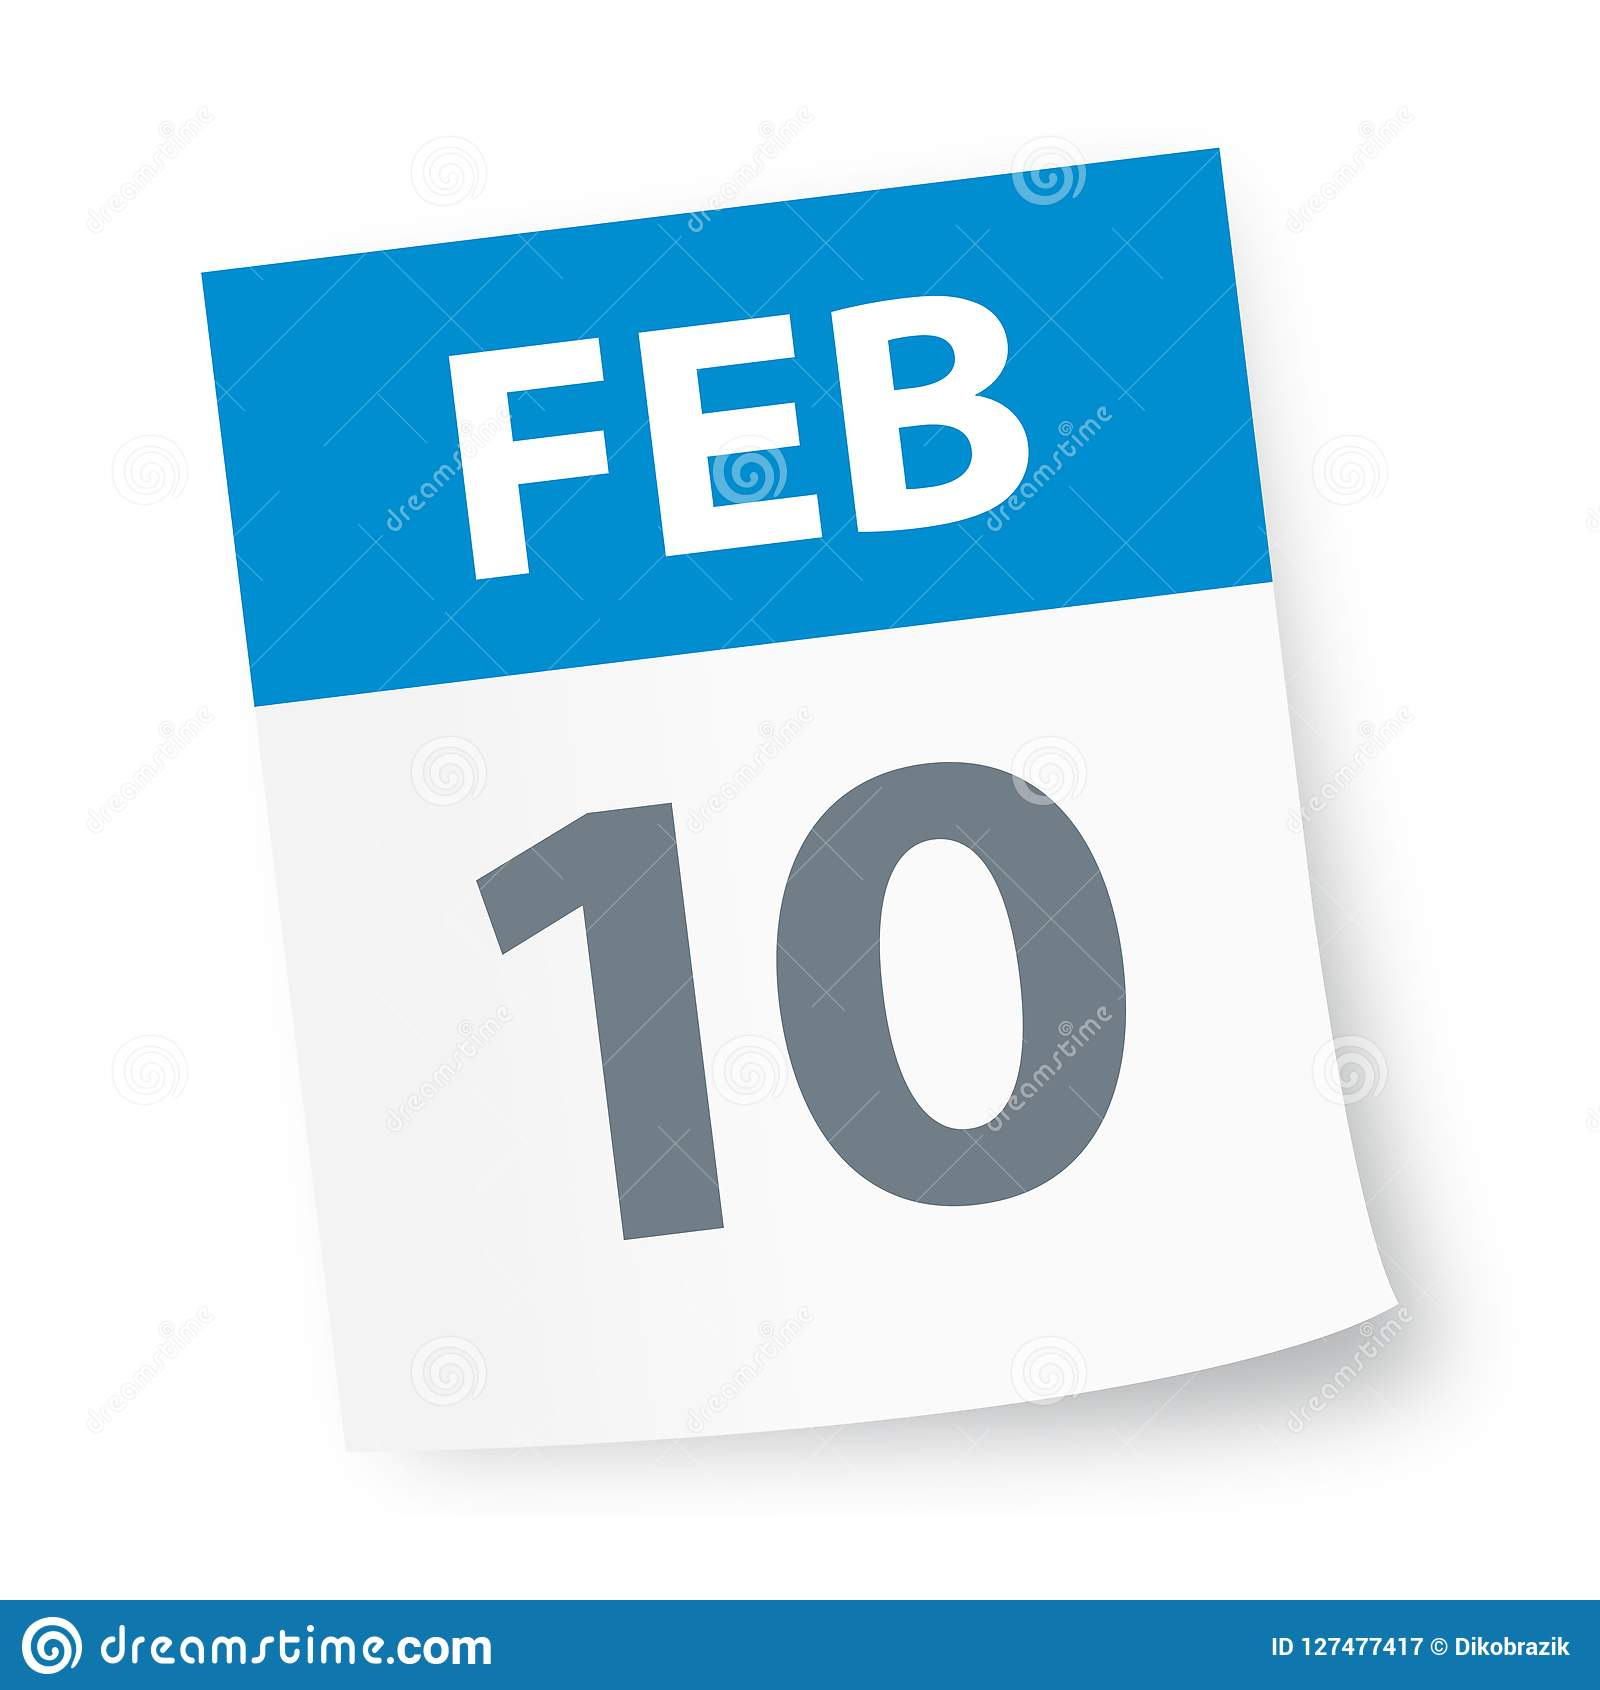 February 10 2019 Calendar February 10   Calendar Icon Stock Illustration   Illustration of